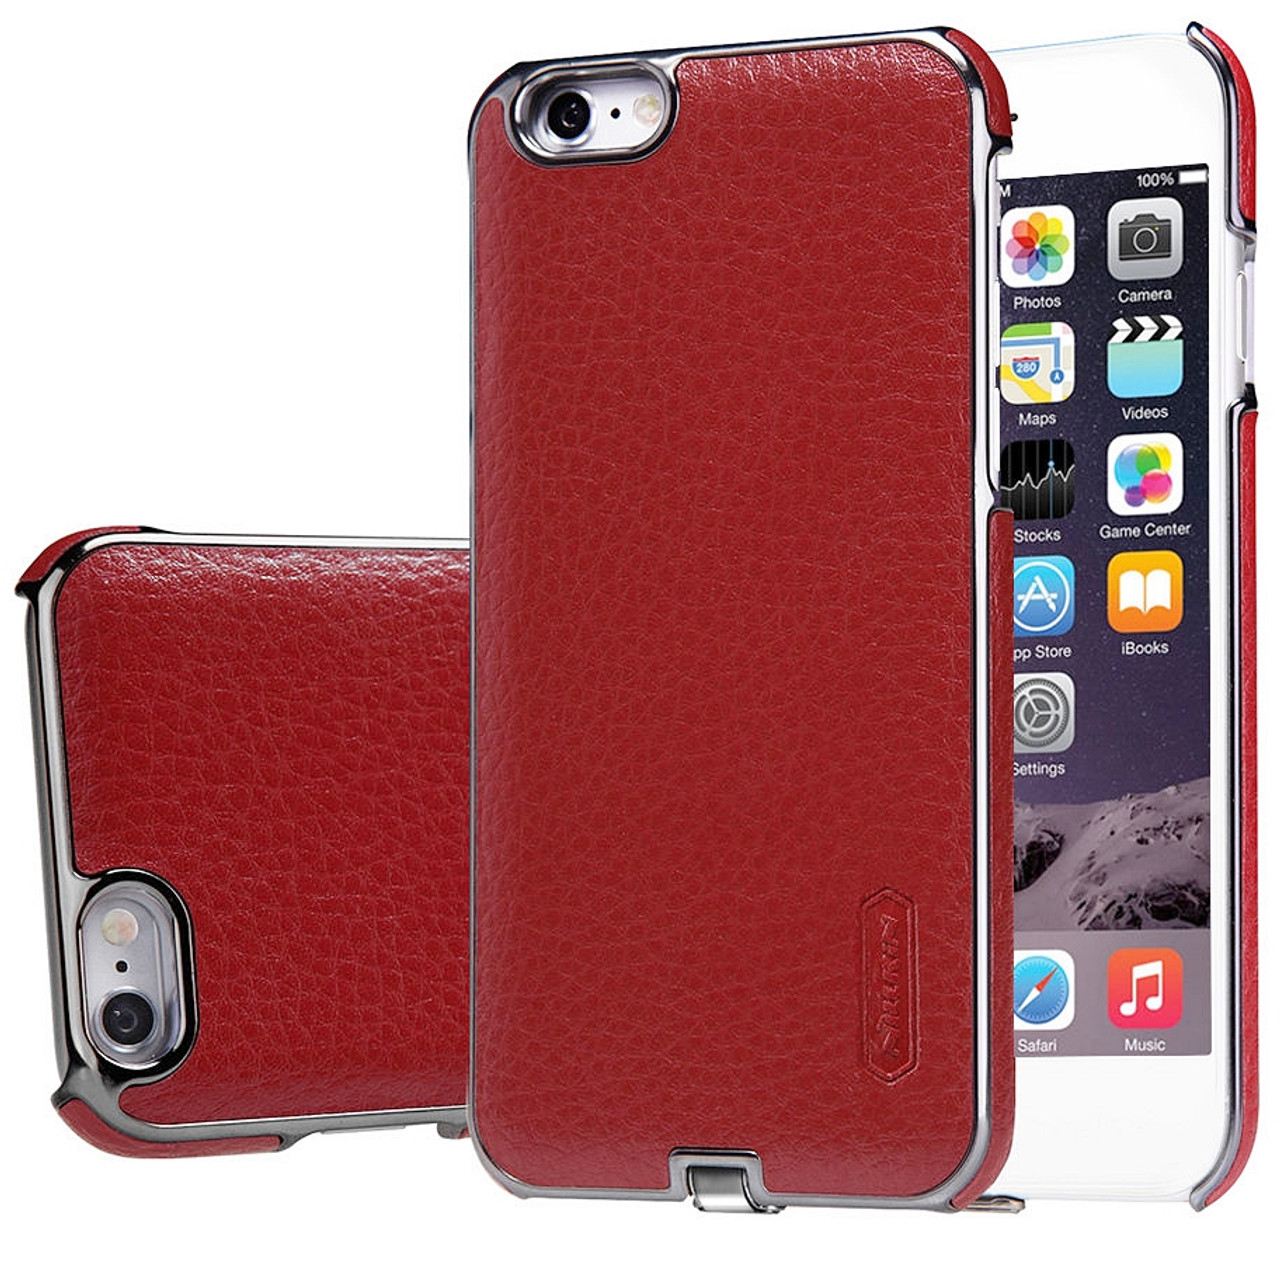 brand new 66062 6ce11 Nillkin iPhone 6 6S Wireless Charging Case Red